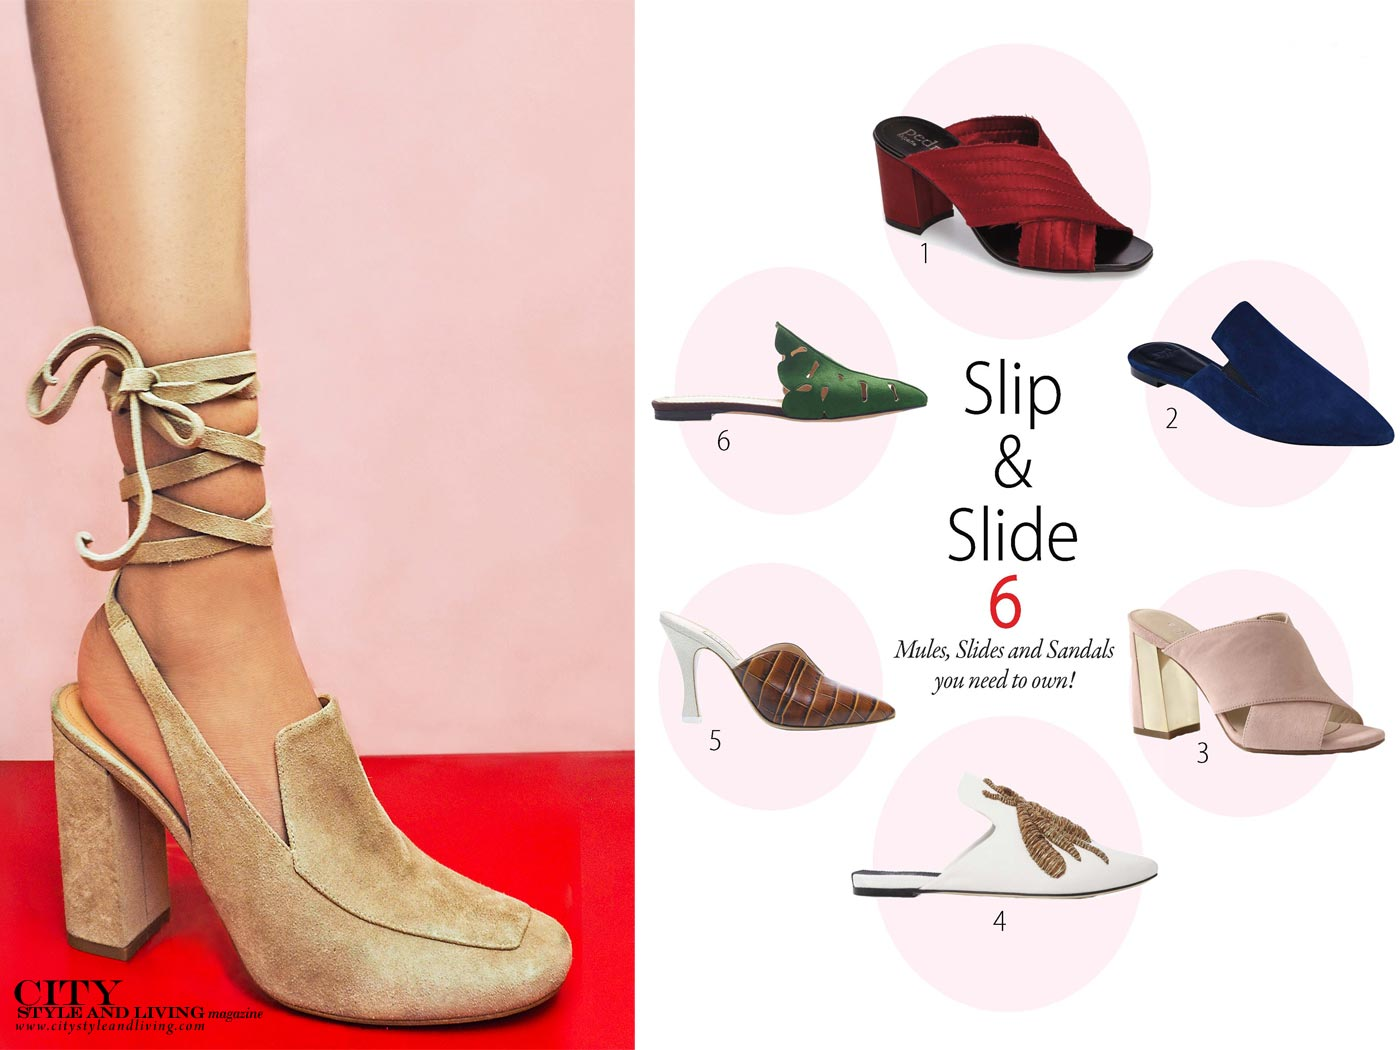 City Style and Living Magazine Mules for summer 2017